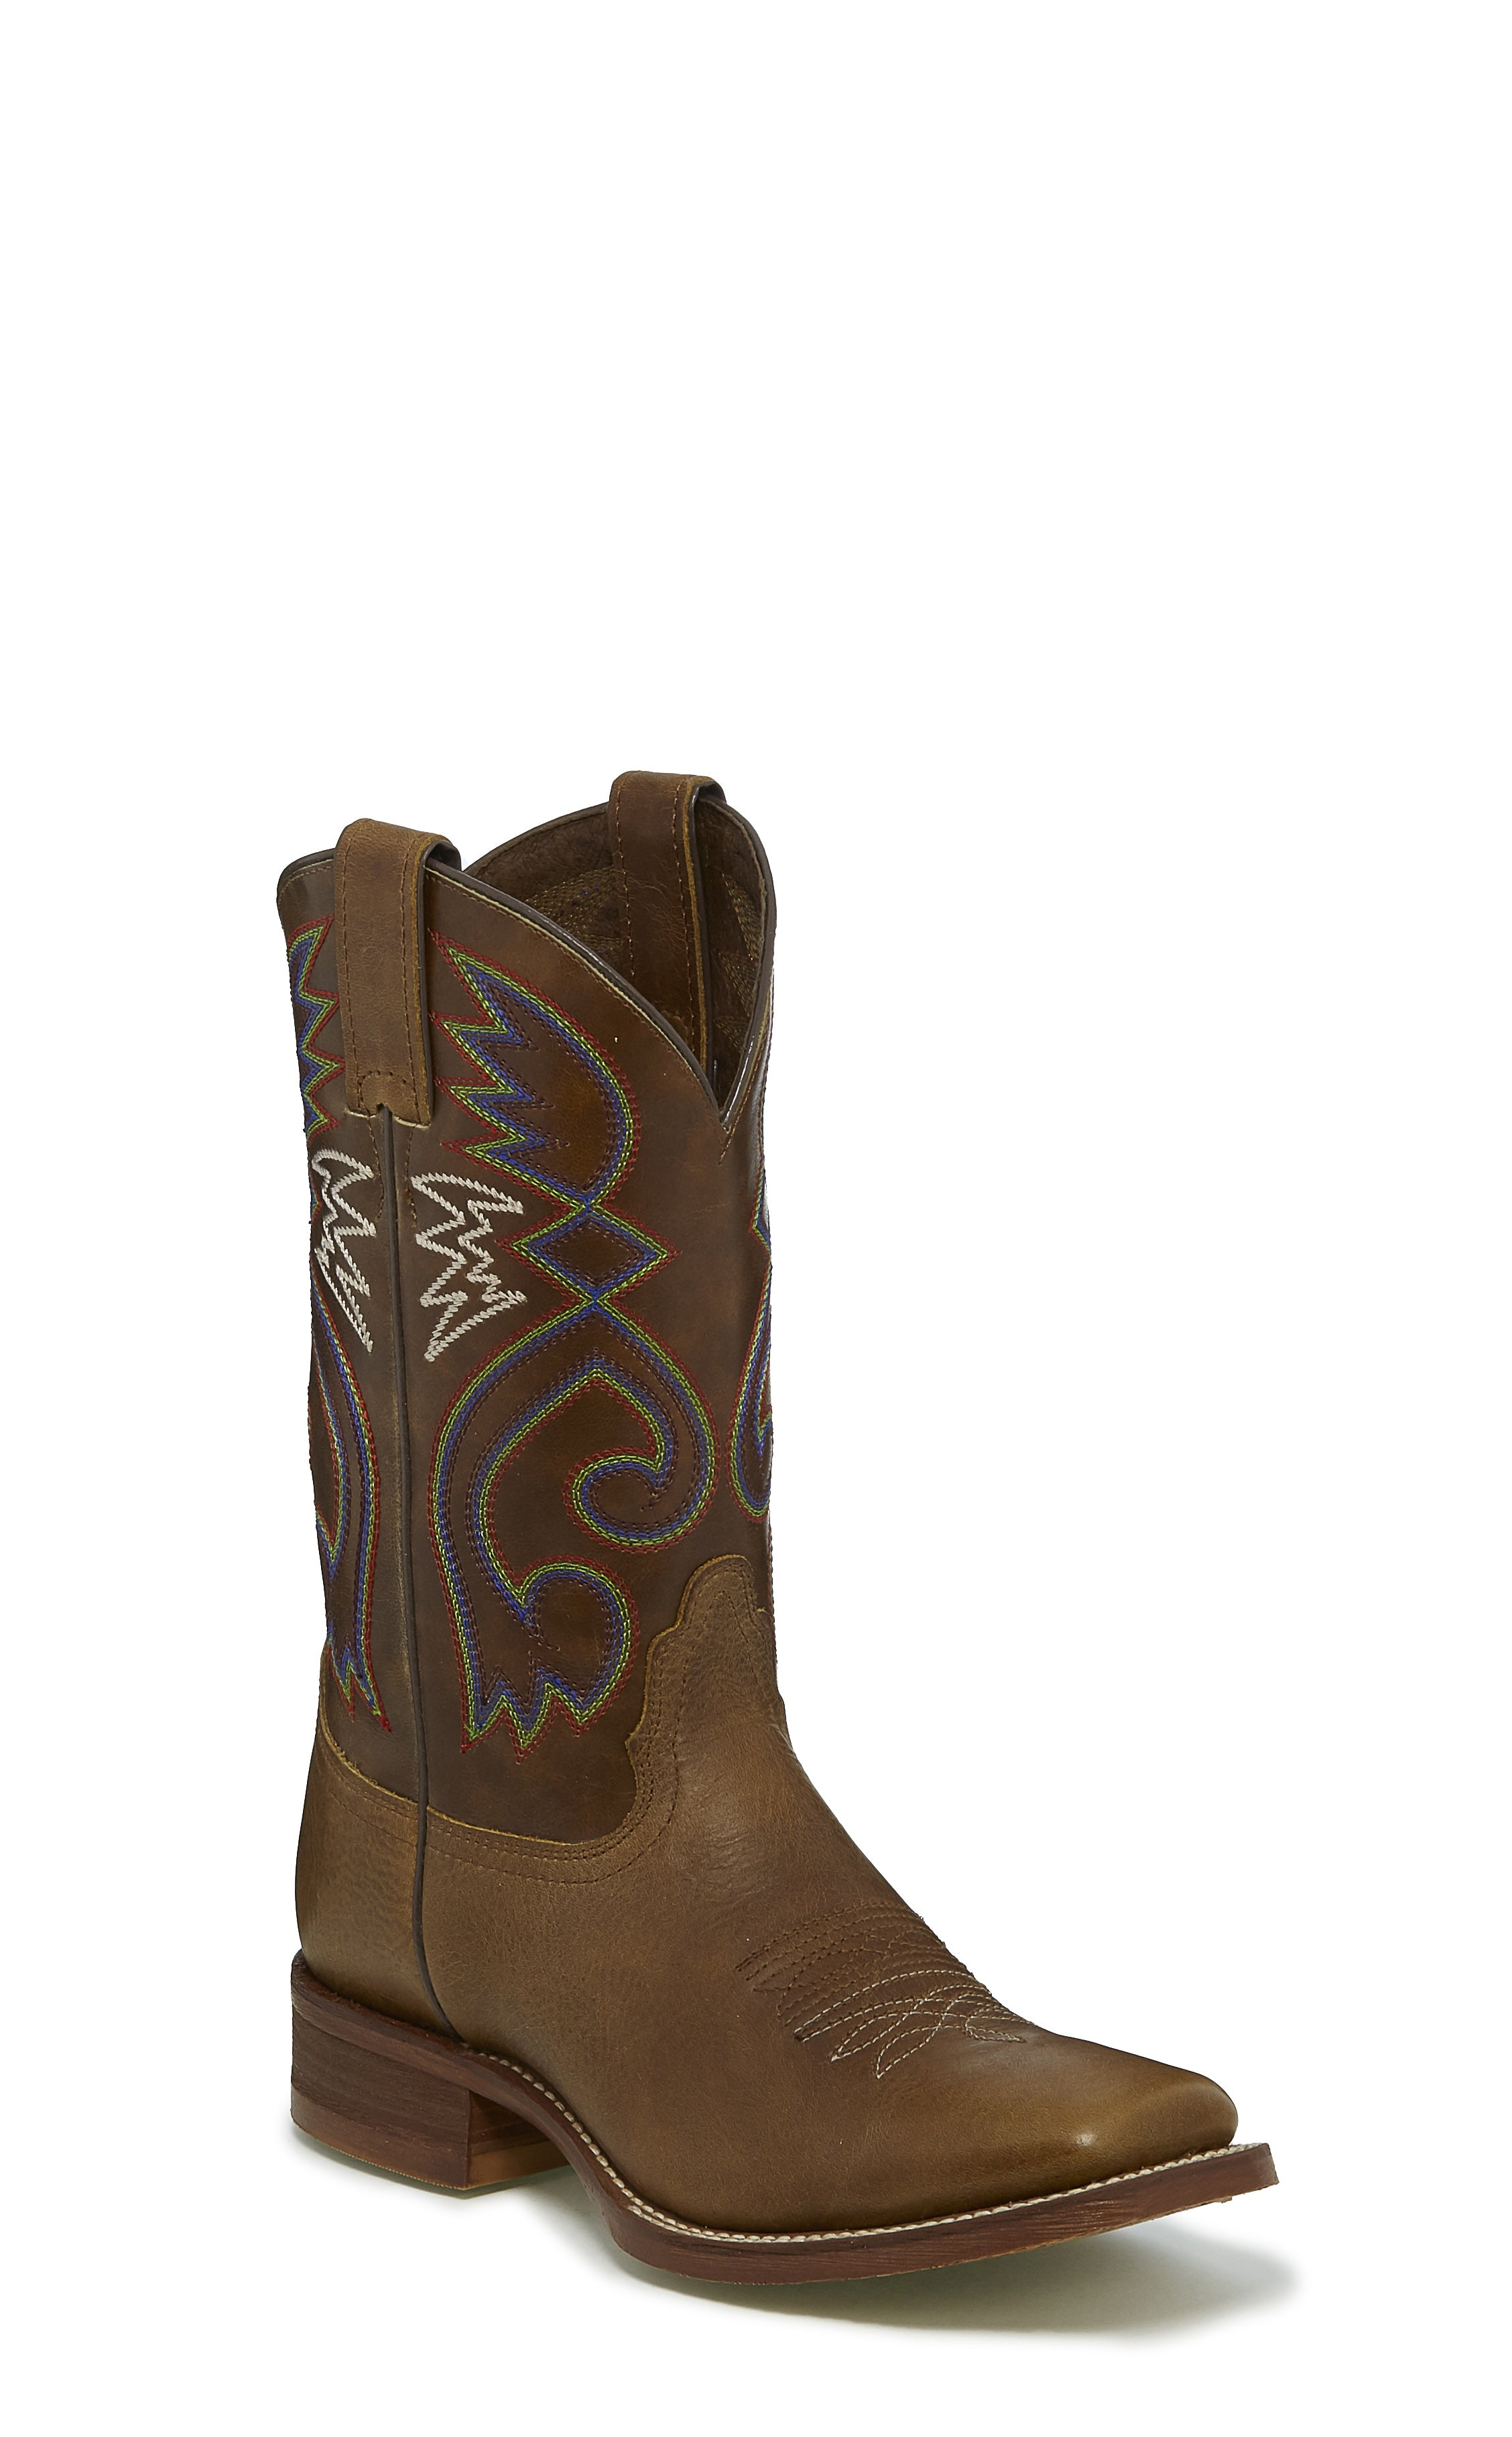 Cowpoke Tan Vintage - Tan / Brown / Rainbow